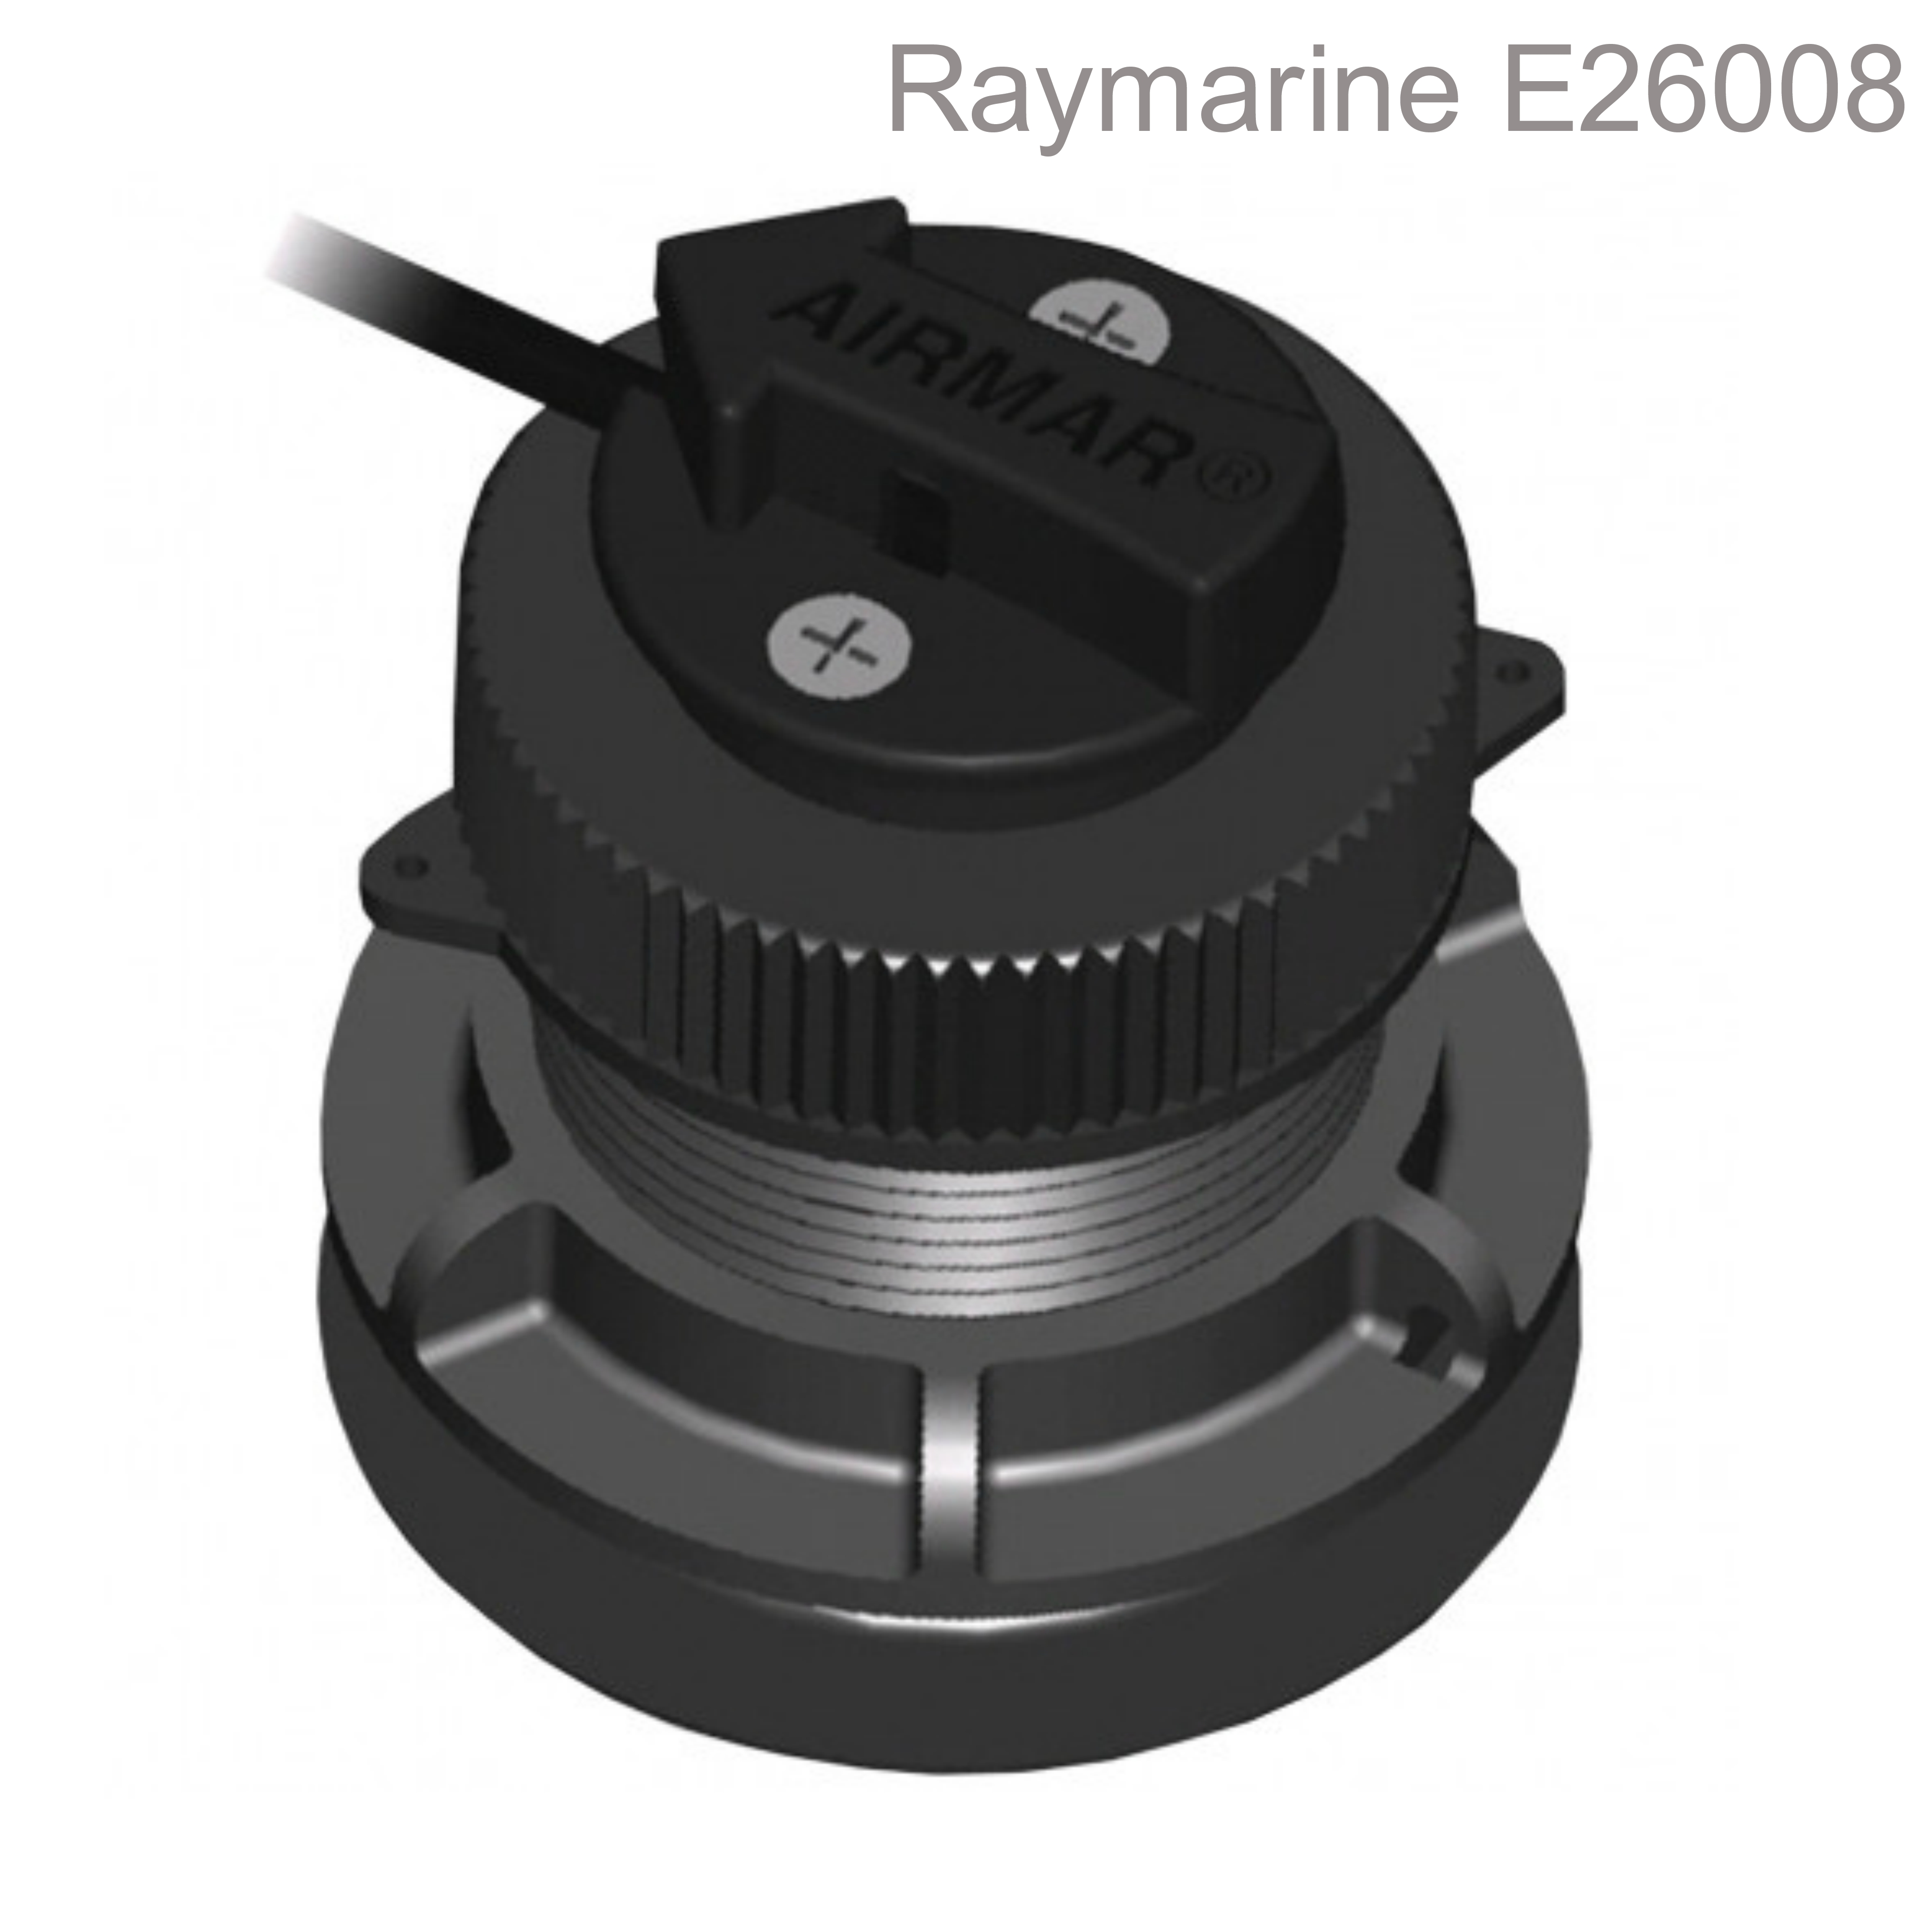 Raymarine ST300/P371 Shorty Thru-Hull LP Transducer|Speed &Temp|10m Cable|i40/i50|For Boats